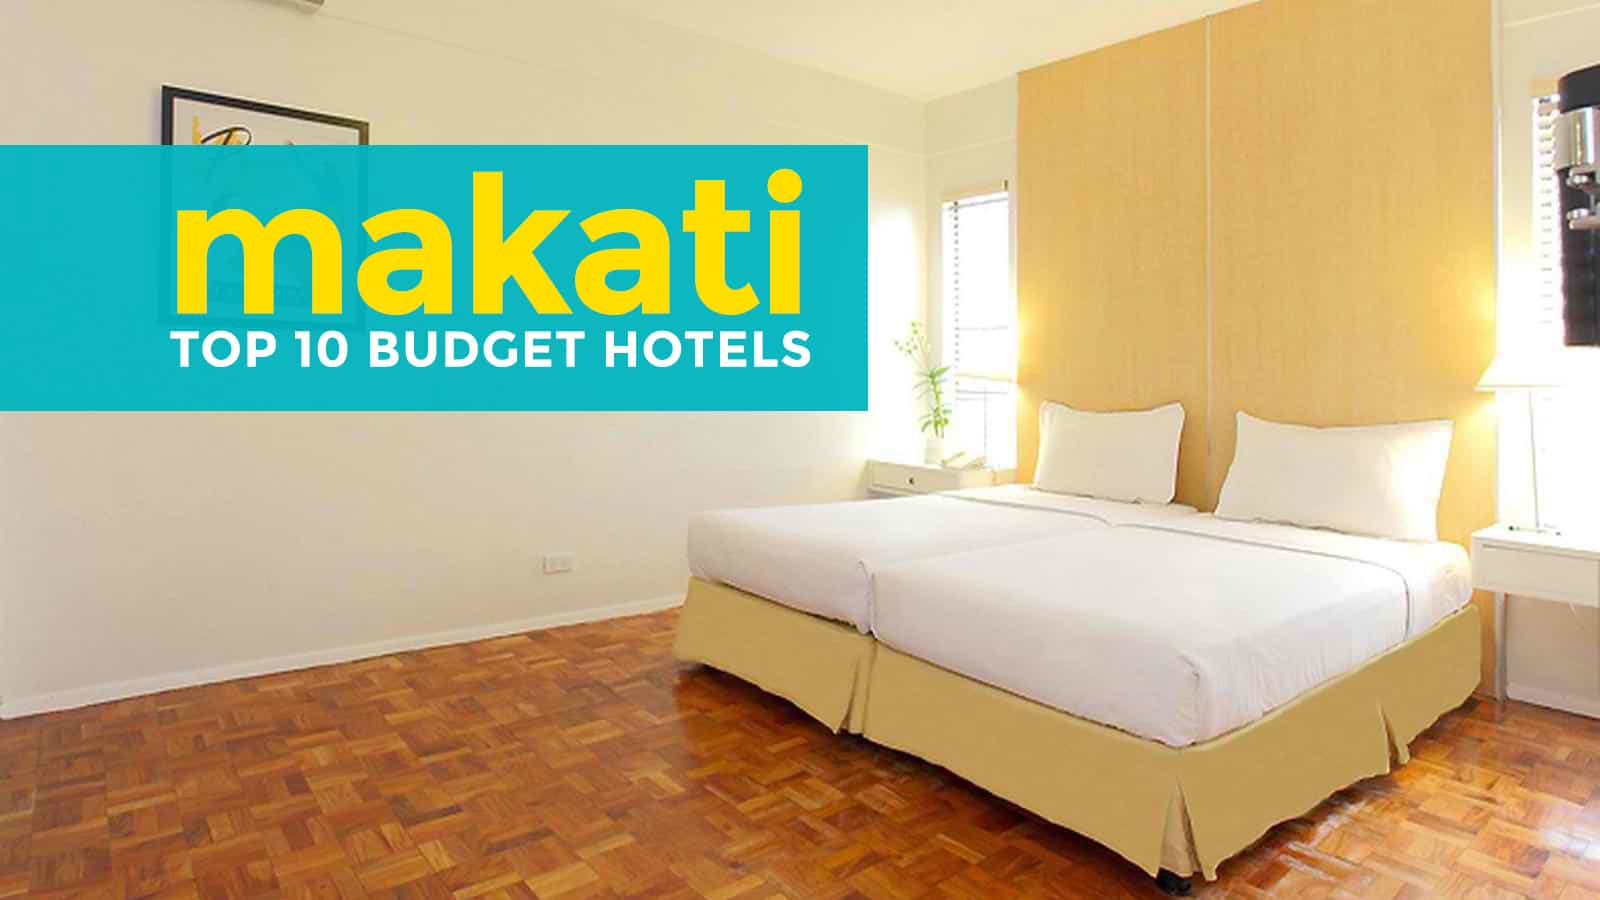 Makati: Top 10 Budget Hotels Under P2000 ($40)